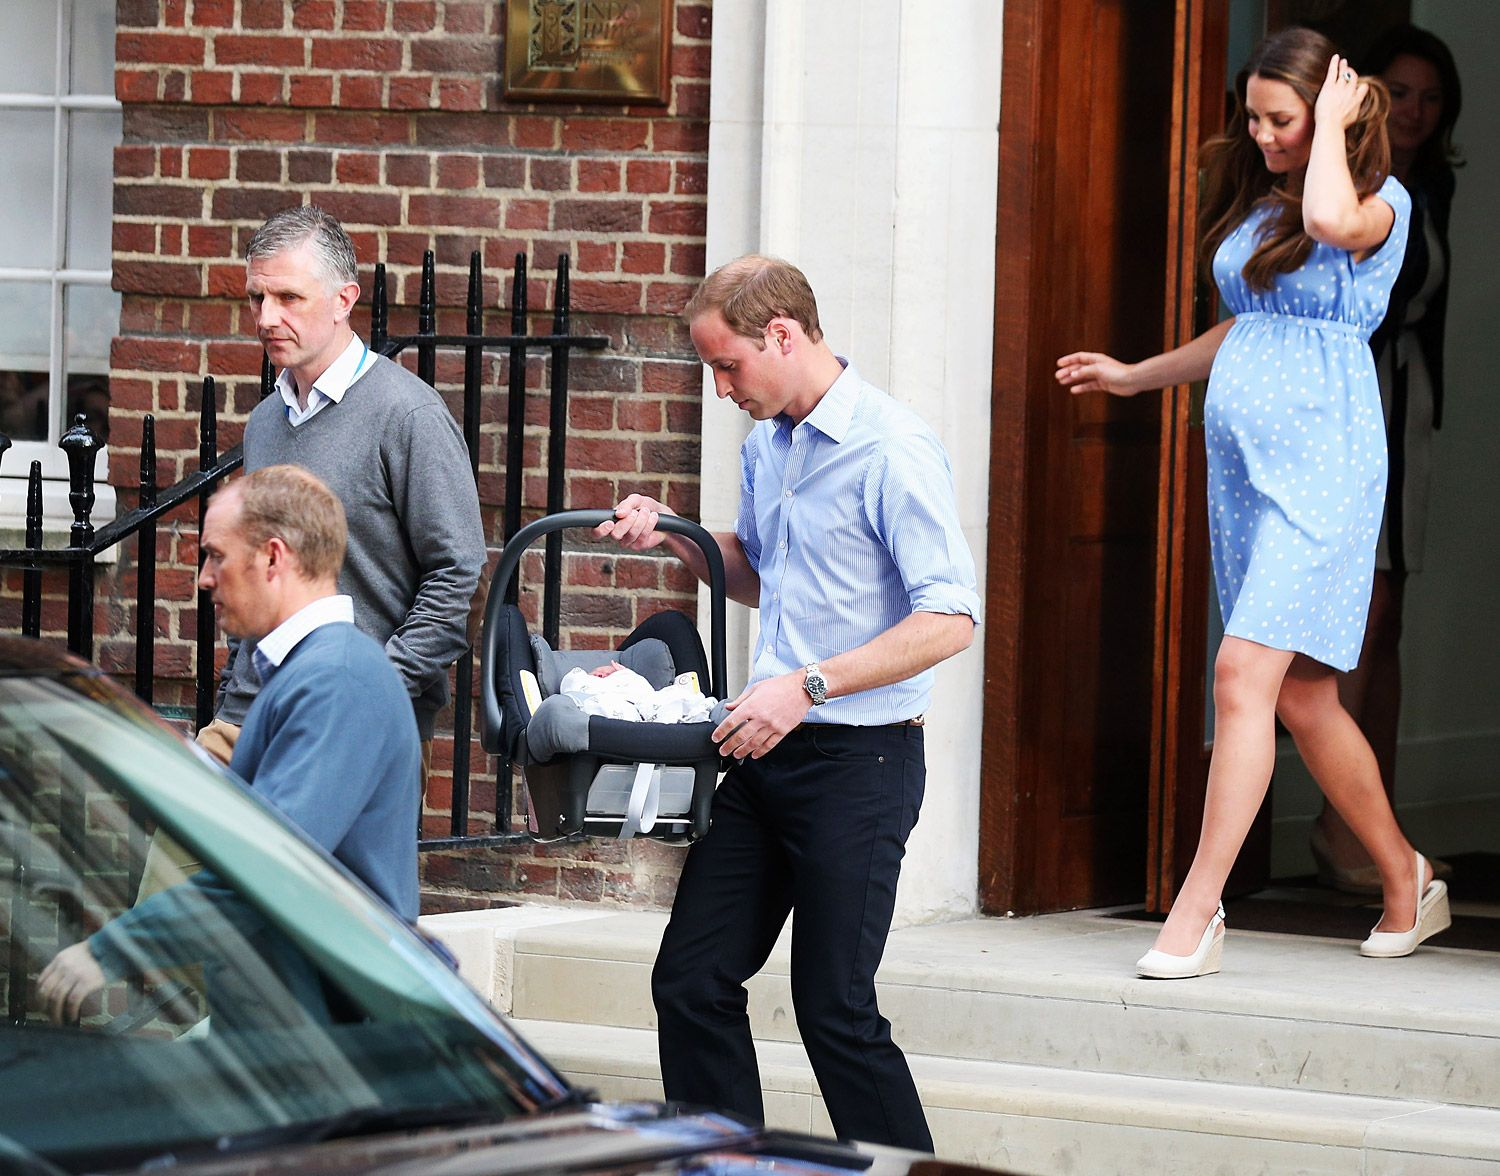 prince william and kate middleton's baby | Prince William and Kate Middleton  left St. Mary's